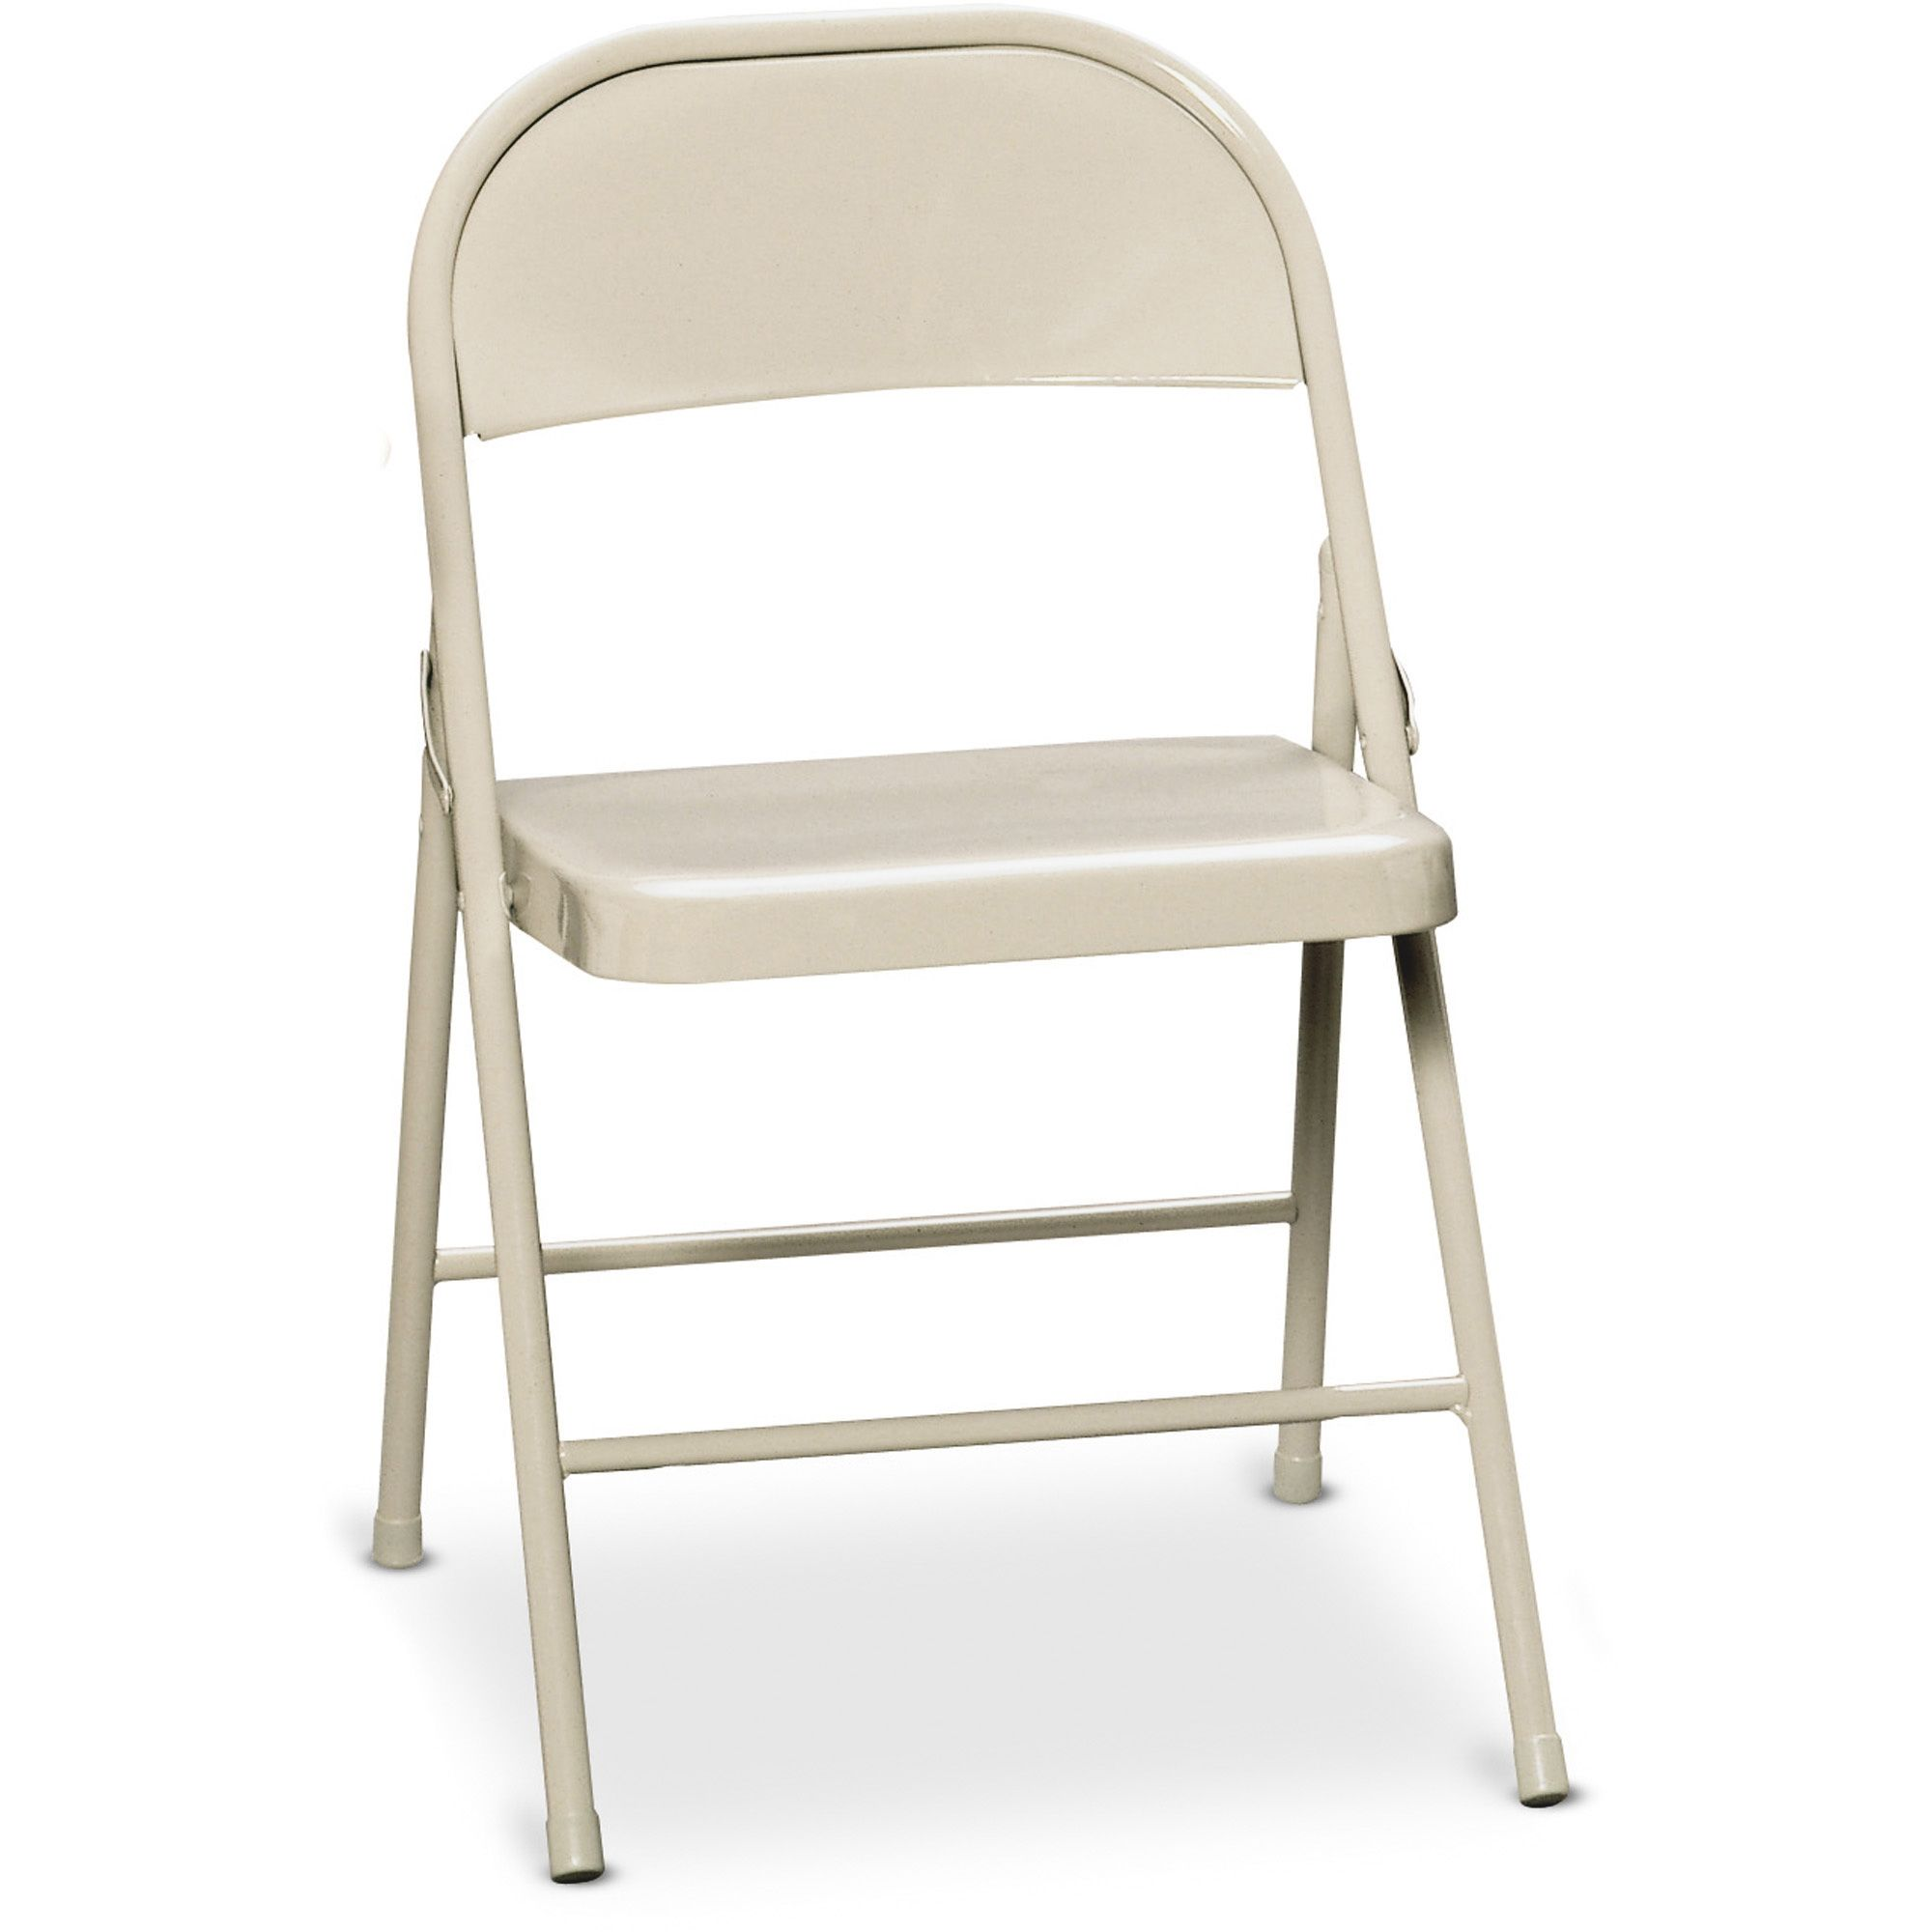 Hon Steel Folding Chairs